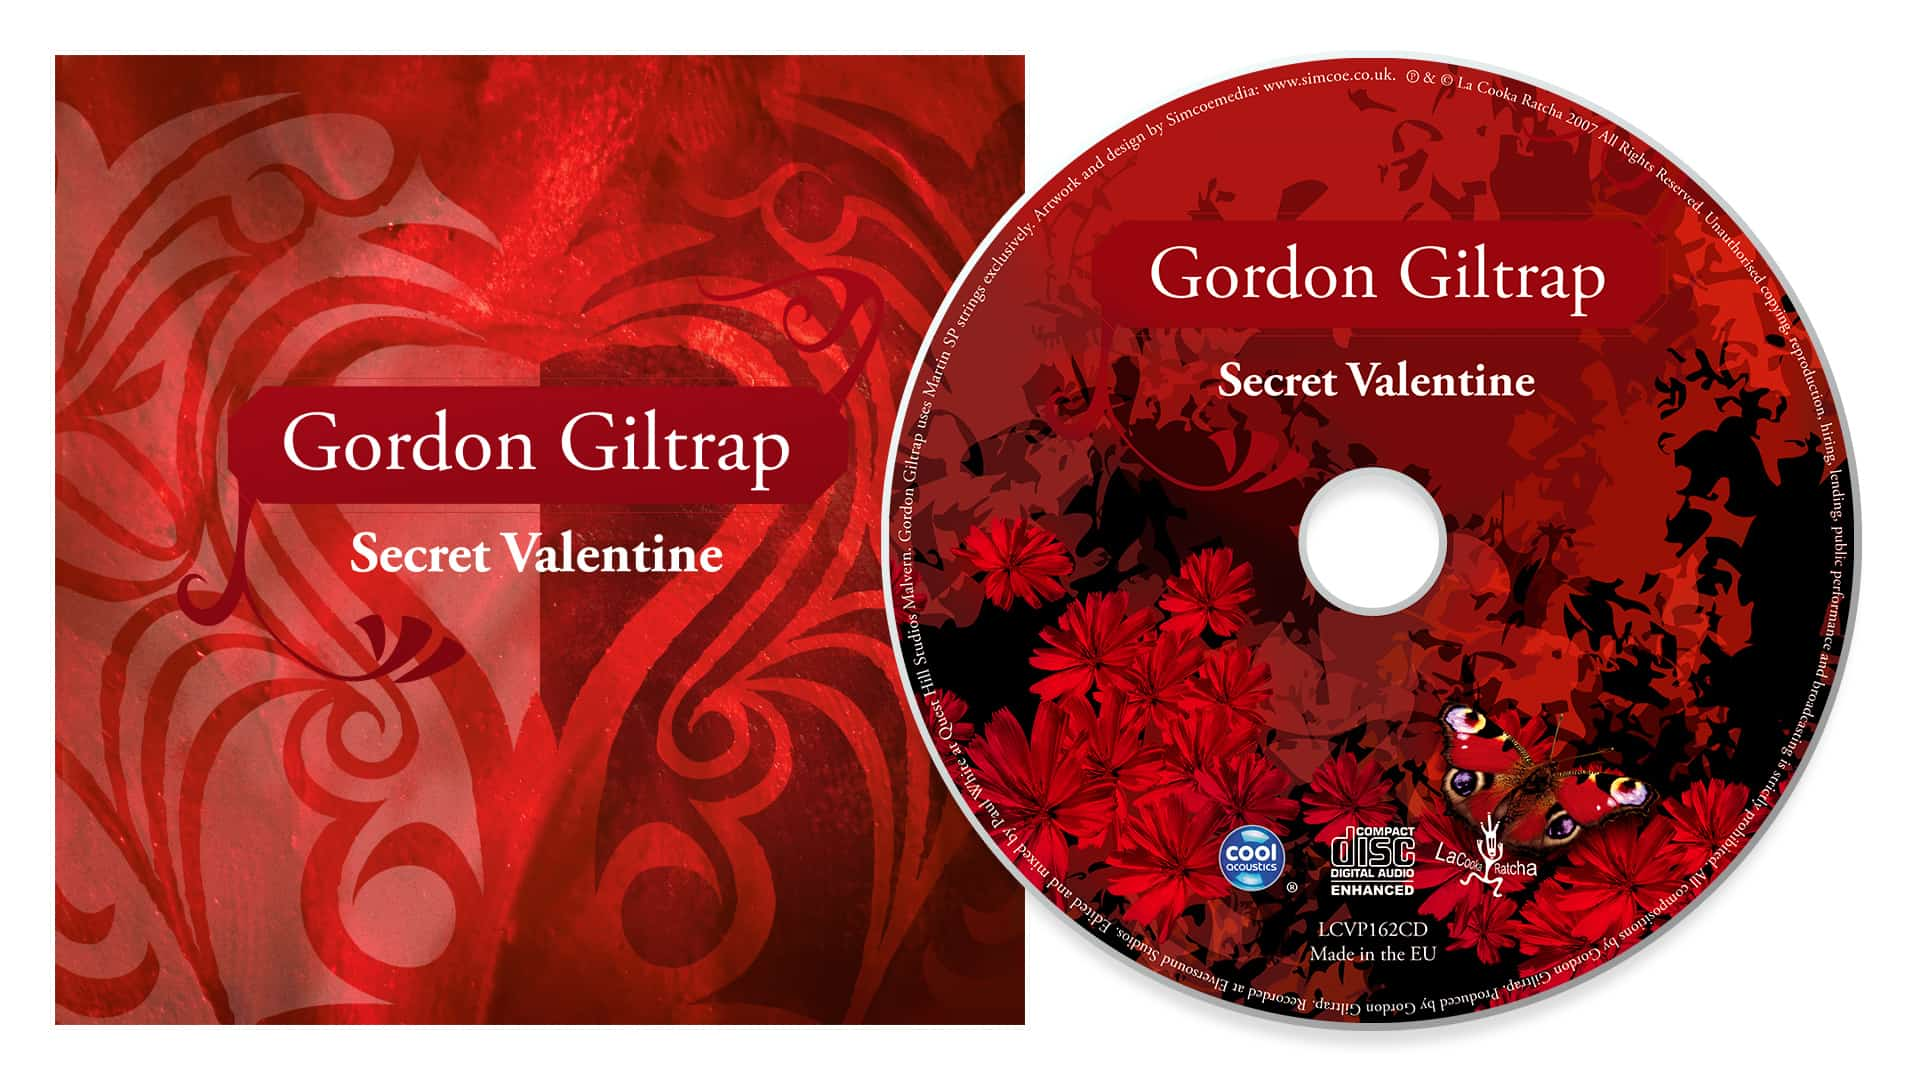 Gordon Giltrap CD and inlay booklet artwork design for Secret Valentine album